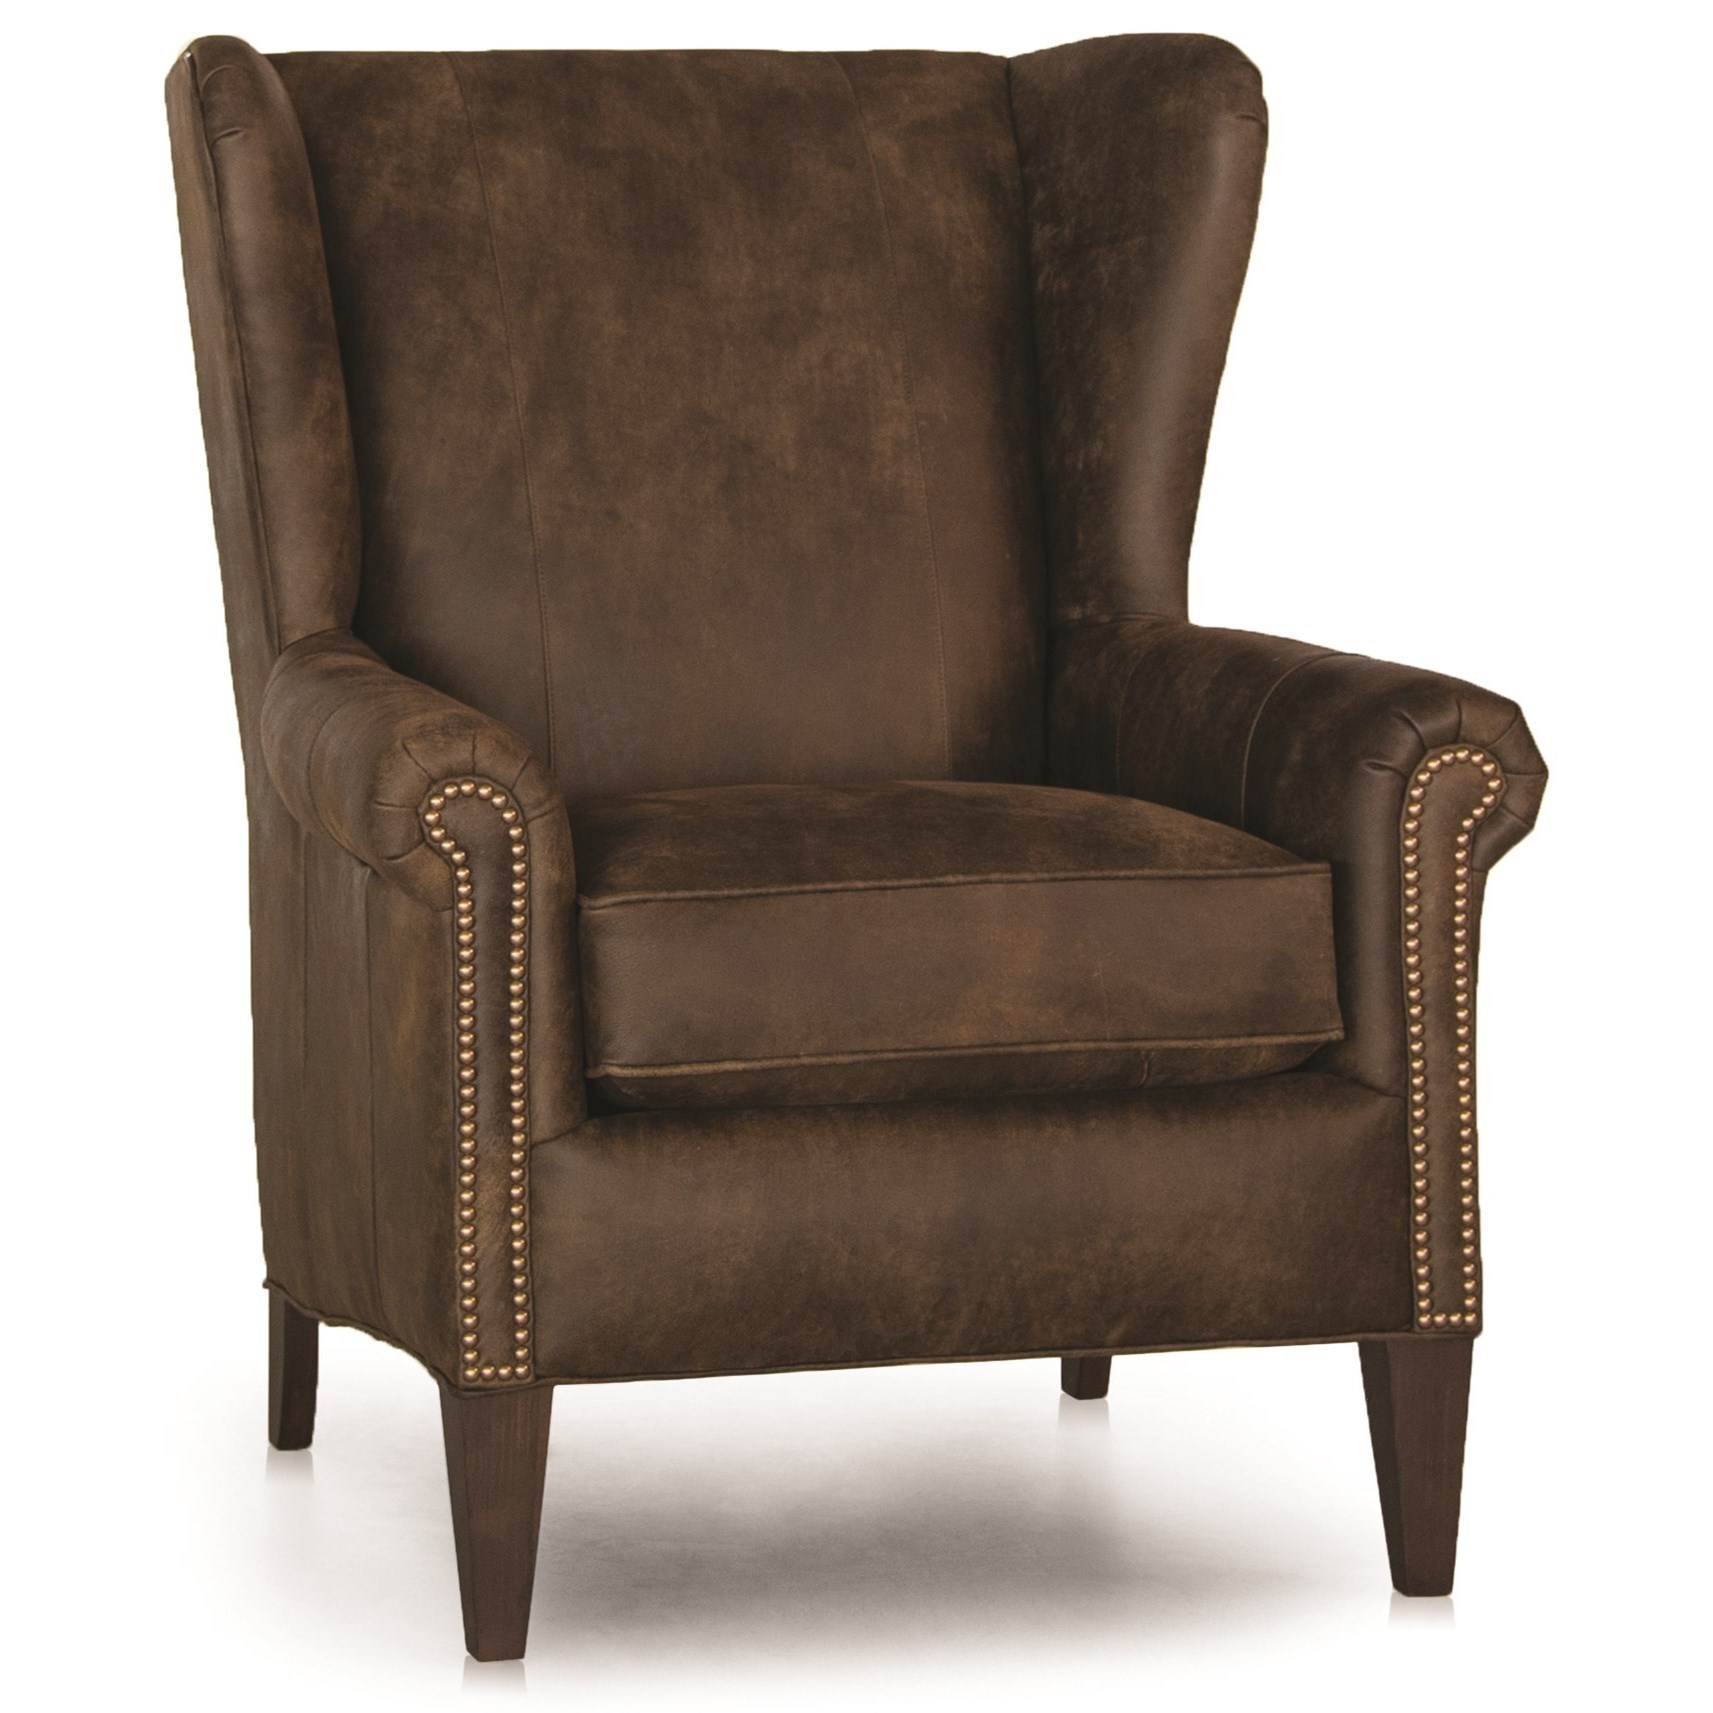 traditional wingback chair glider rocking and ottoman smith brothers 505 wing back w nailhead trim